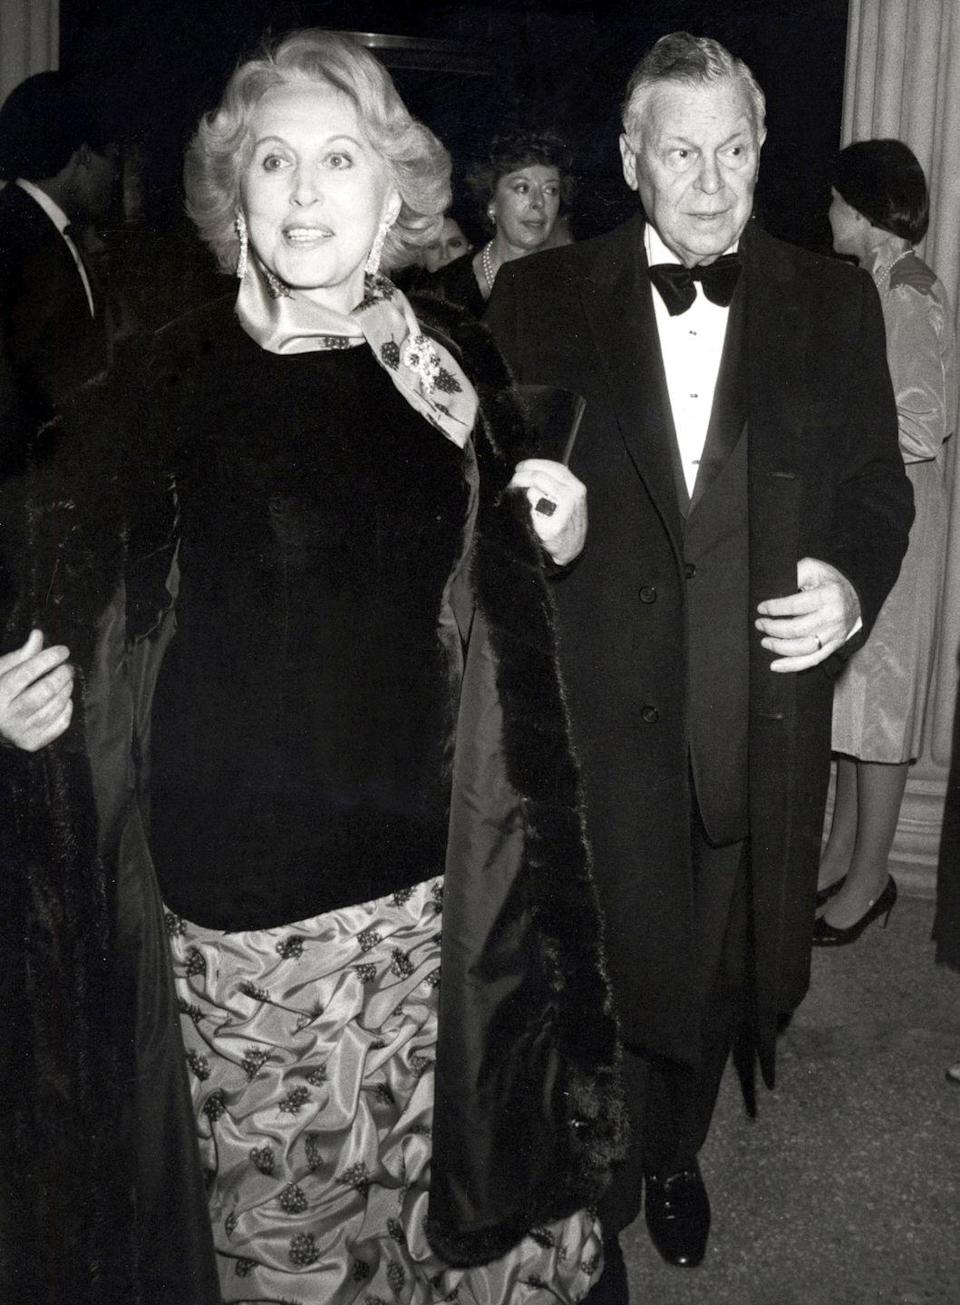 """<p>Beauty mogul Estée Lauder <a href=""""https://www.elcompanies.com/en/who-we-are/the-lauder-family/the-estee-story"""" rel=""""nofollow noopener"""" target=""""_blank"""" data-ylk=""""slk:married Joseph Lauder in 1930"""" class=""""link rapid-noclick-resp"""">married Joseph Lauder in 1930</a> before moving to Manhattan and building a company together. Estée and Joseph divorced in 1939, but eventually reunited and remarried in 1942. They were happily married until Joseph's death in 1983. </p>"""